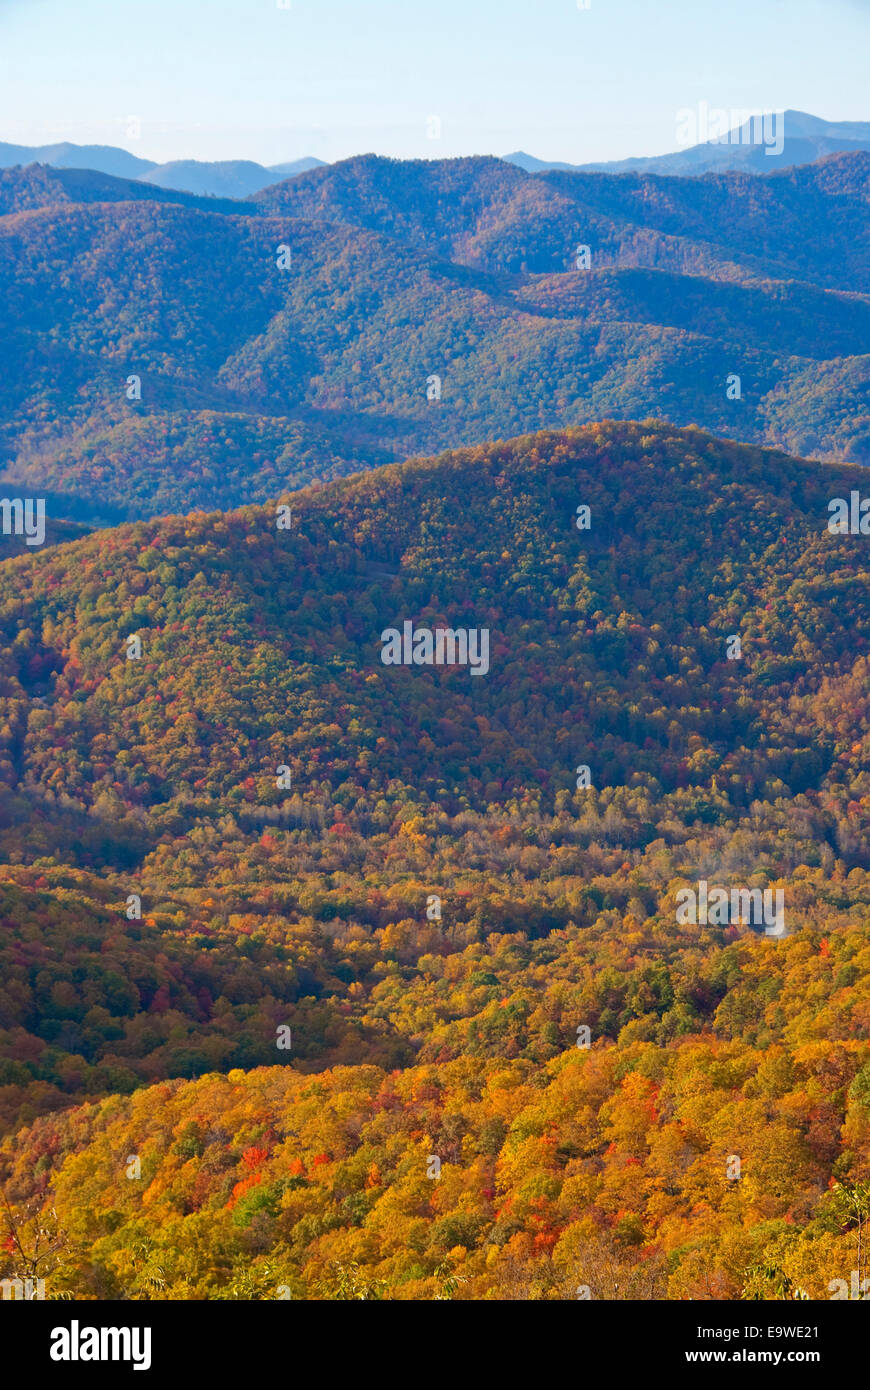 Autumn color from a Blue Ridge Parkway overlook in southern Appalchians near Asheville, North Carolina. - Stock Image